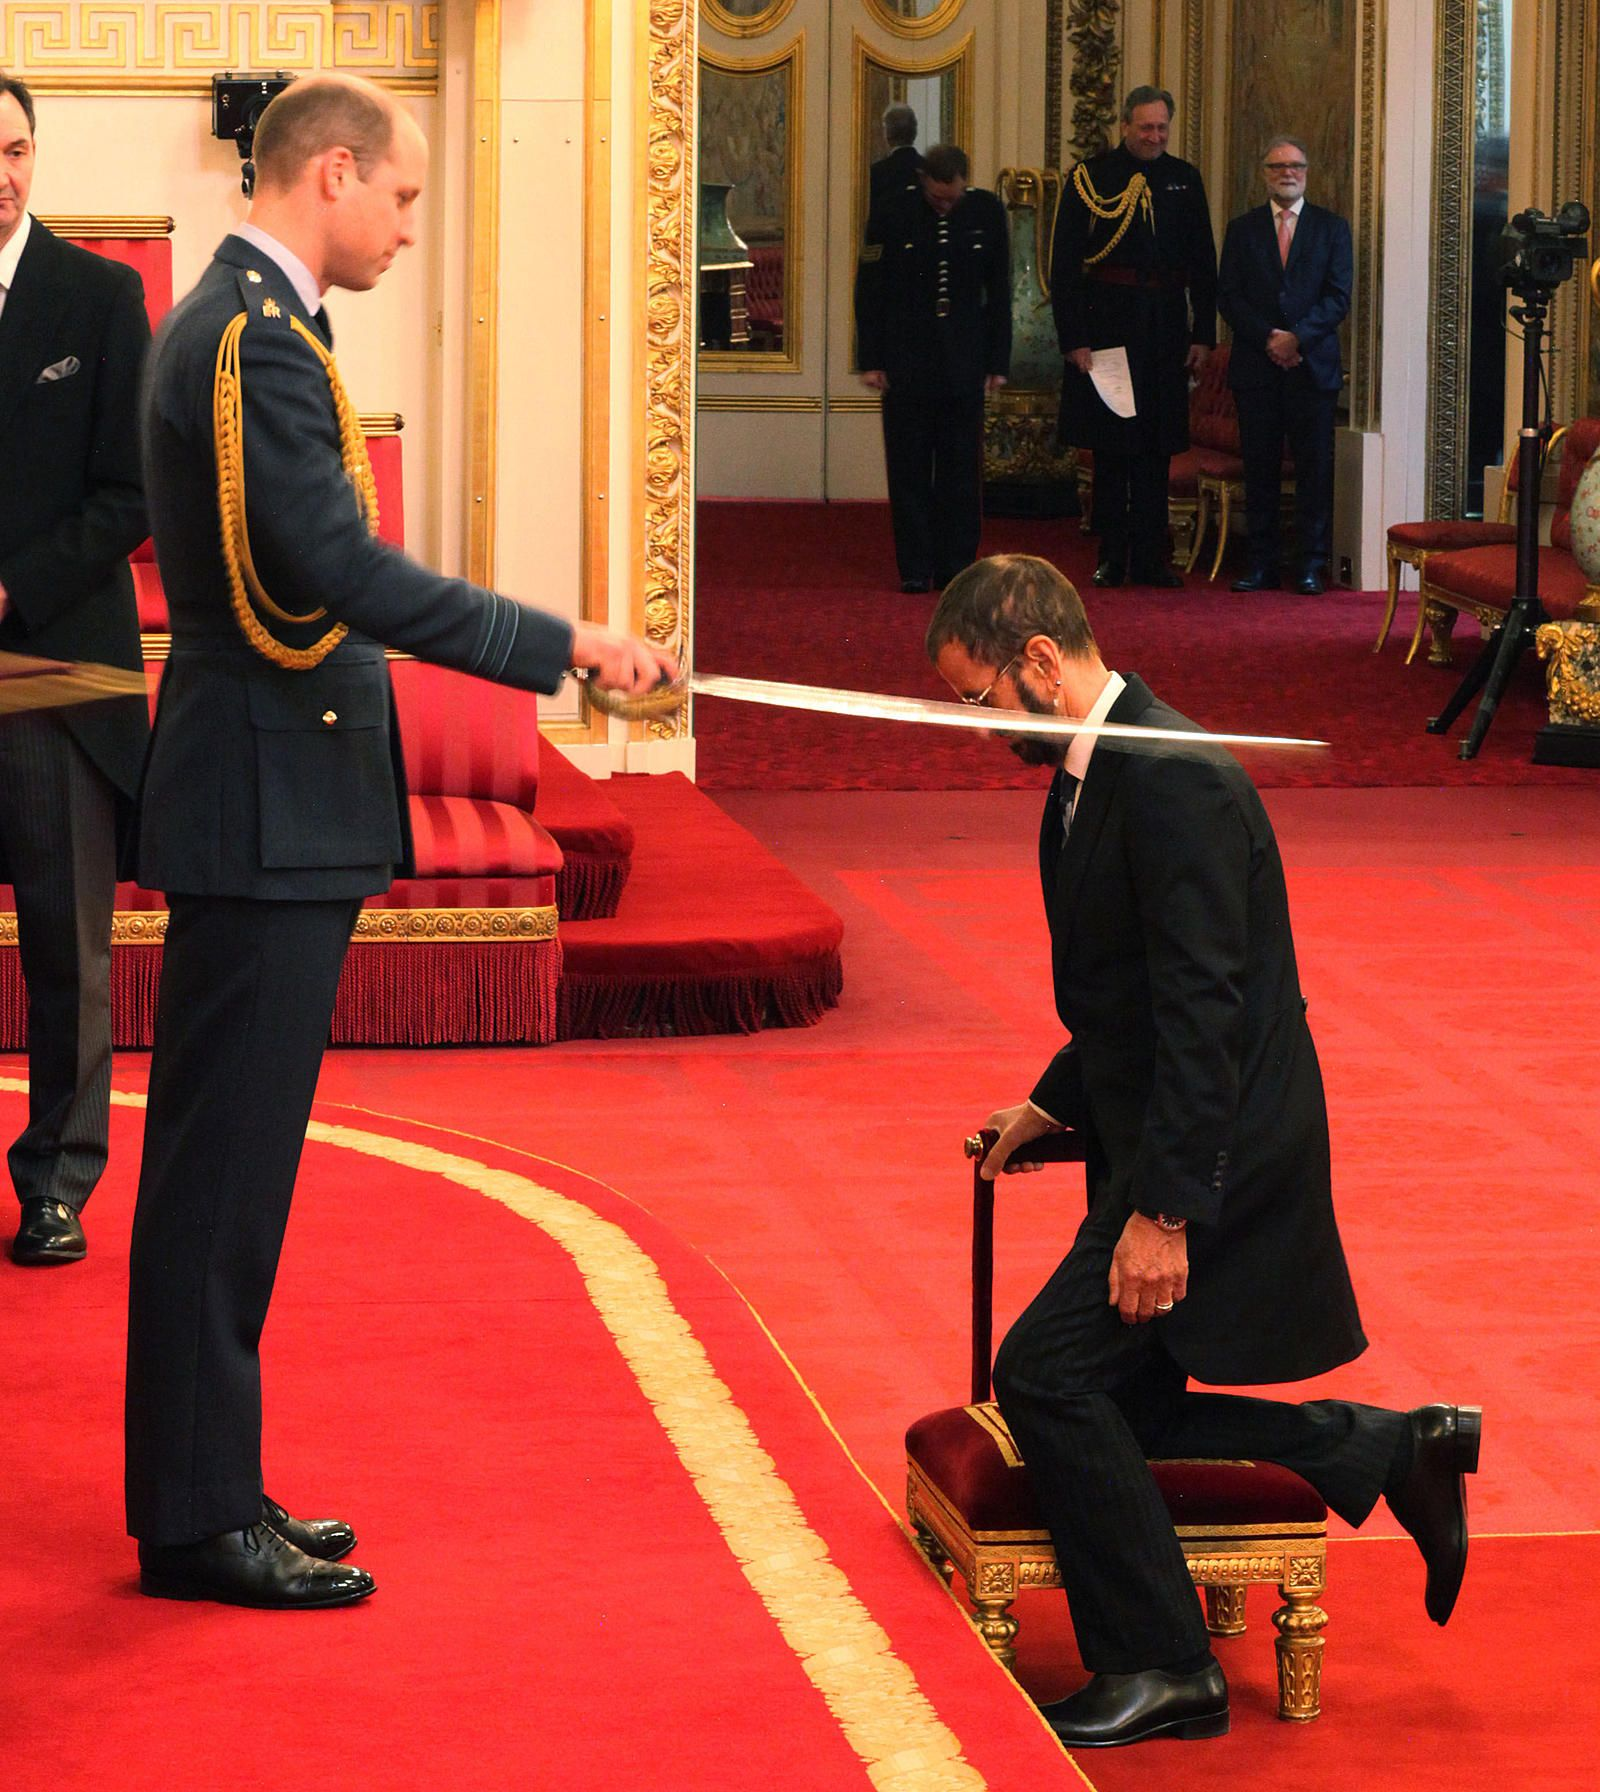 Ringo Starr being Knighted by Prince William